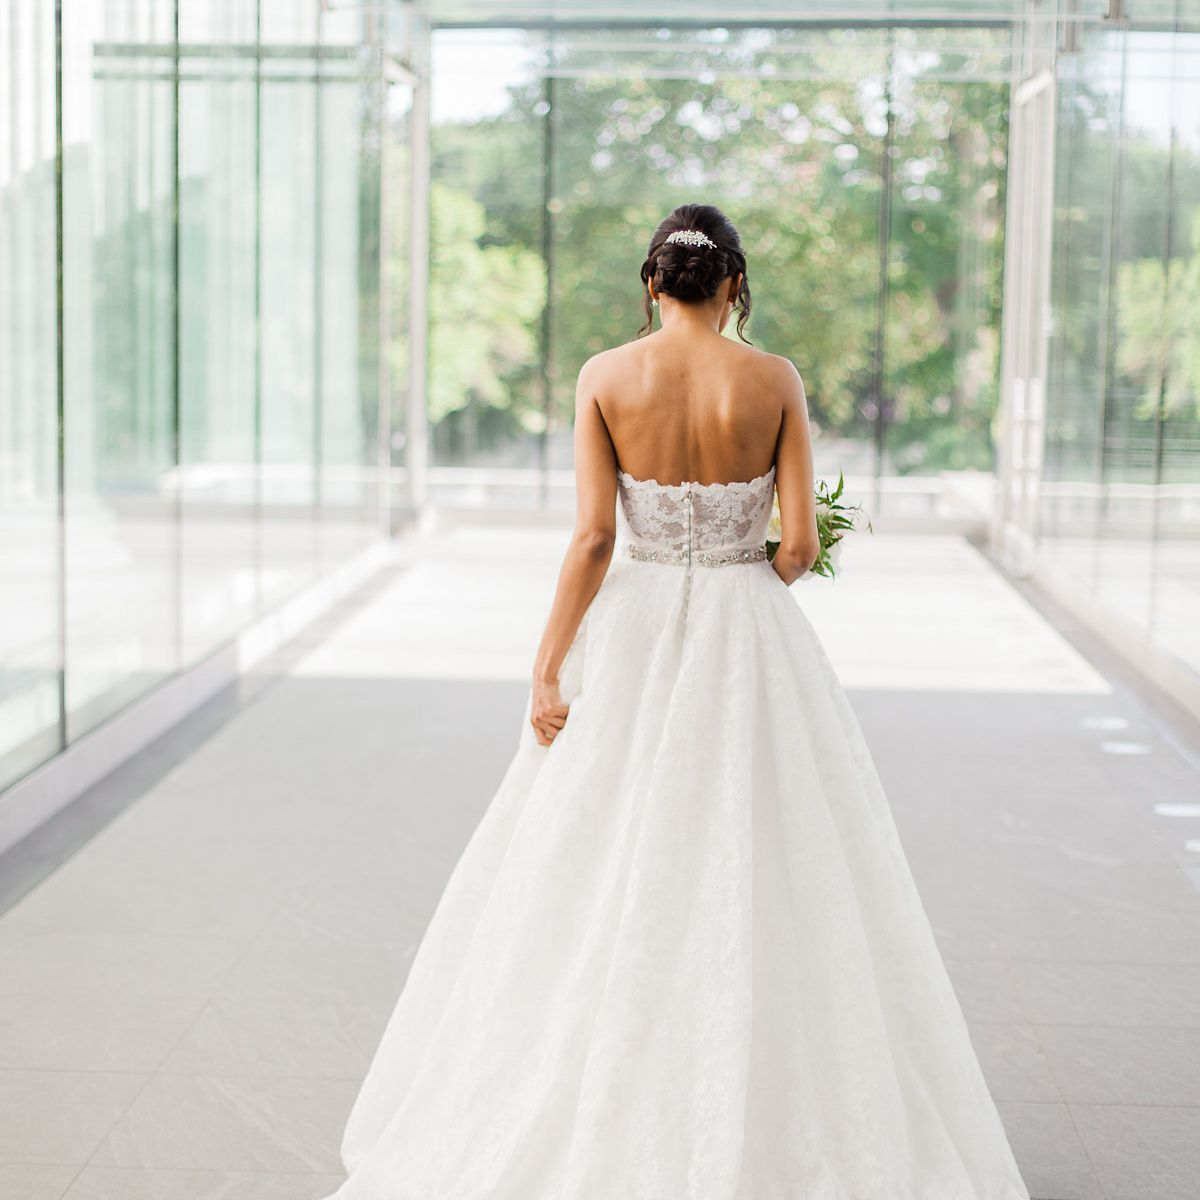 Solo bride shot from back